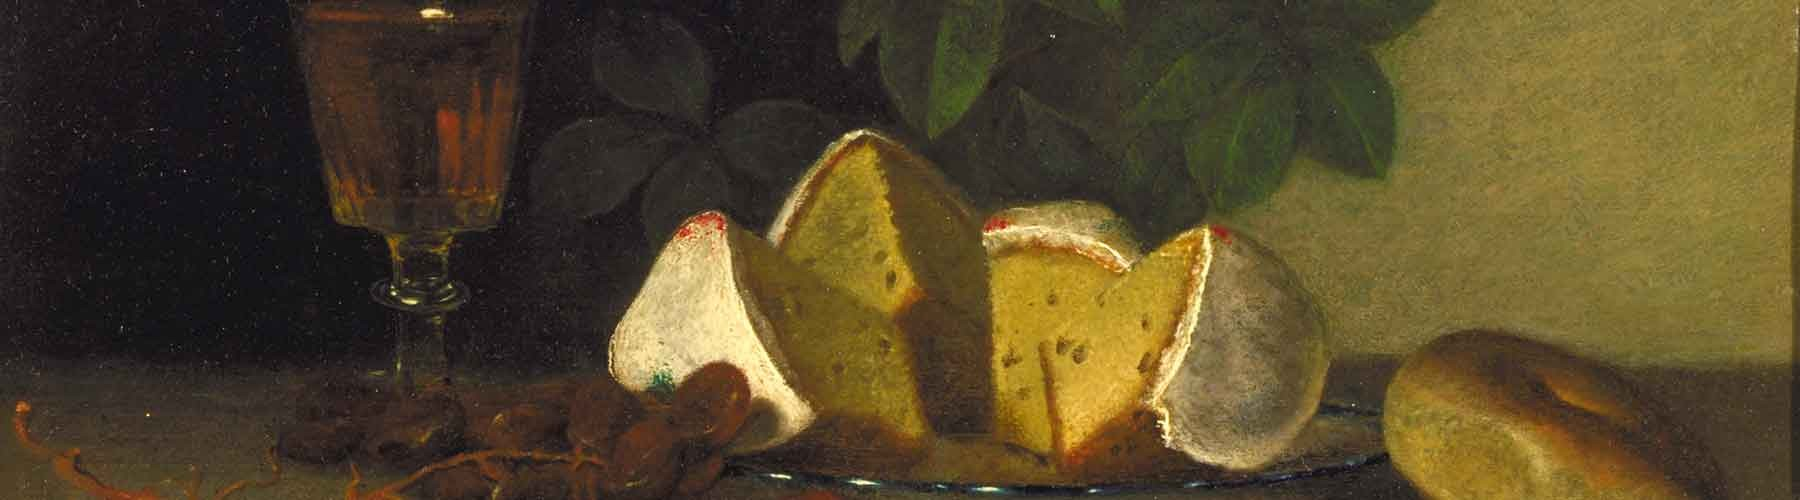 Still Life with Wine, Cake, and Nuts by Raphaelle Peale